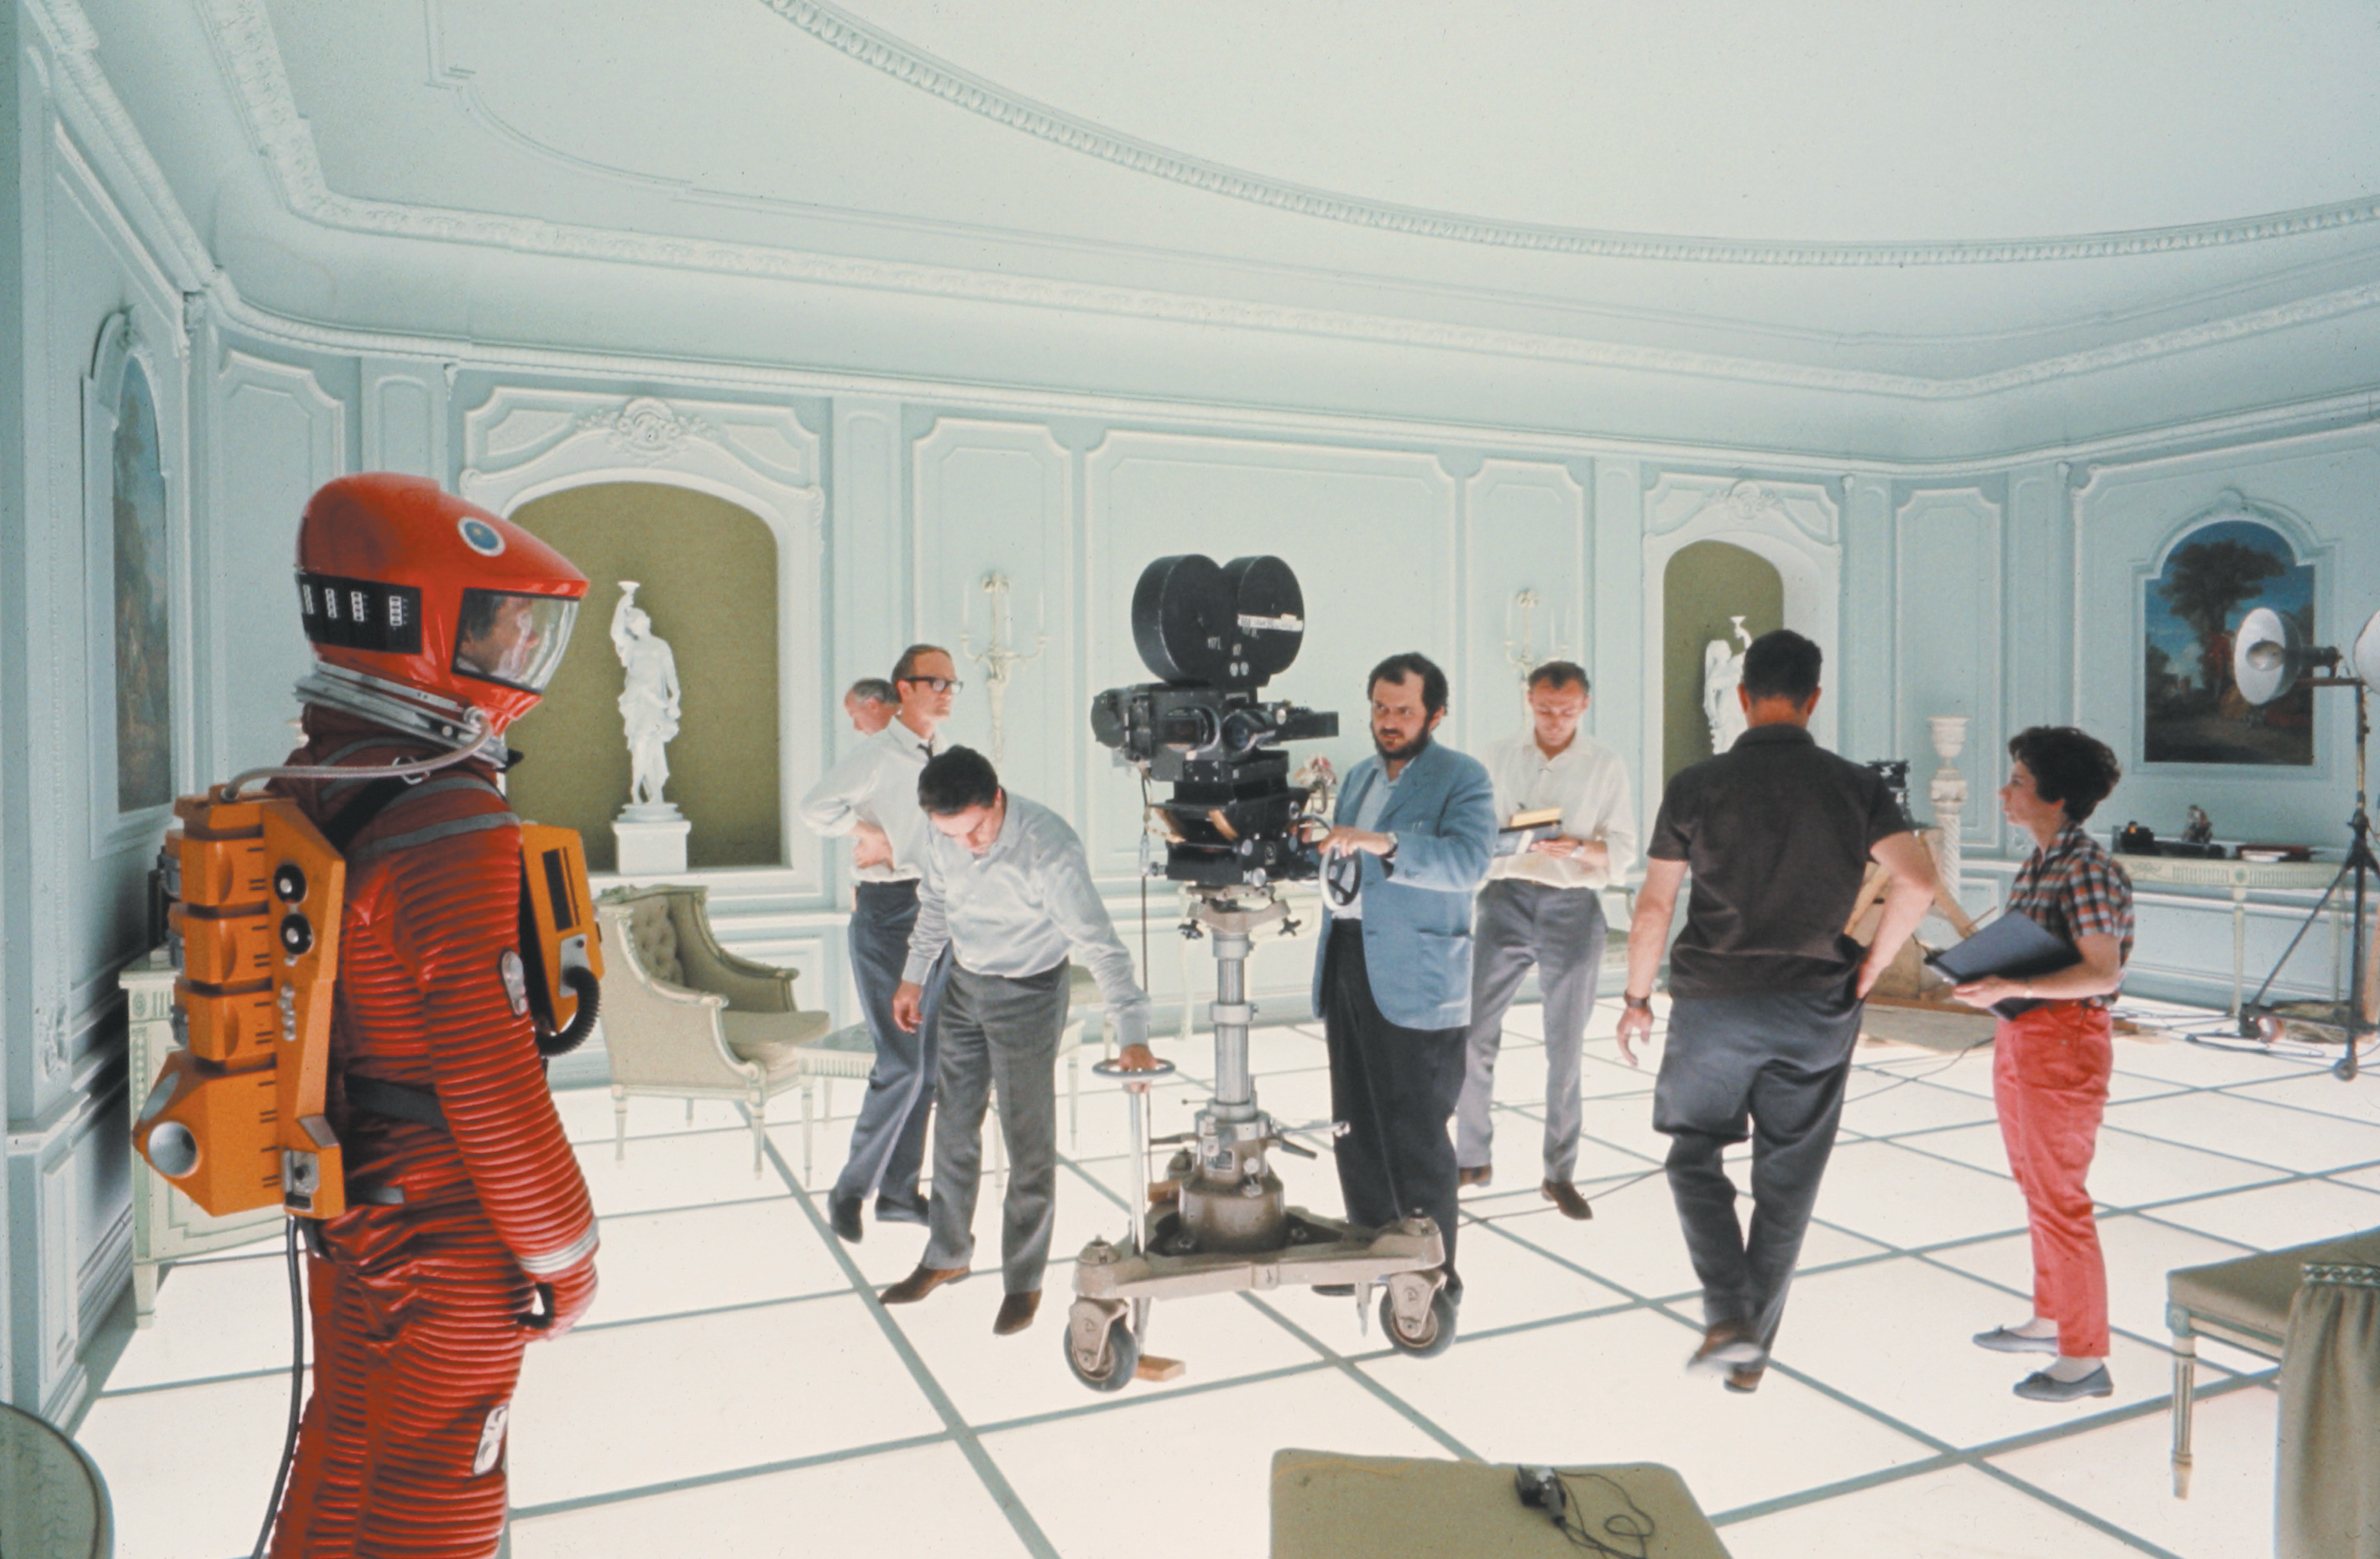 2001: A Space Odyssey' Exhibition Coming to Museum of Moving Image |  IndieWire